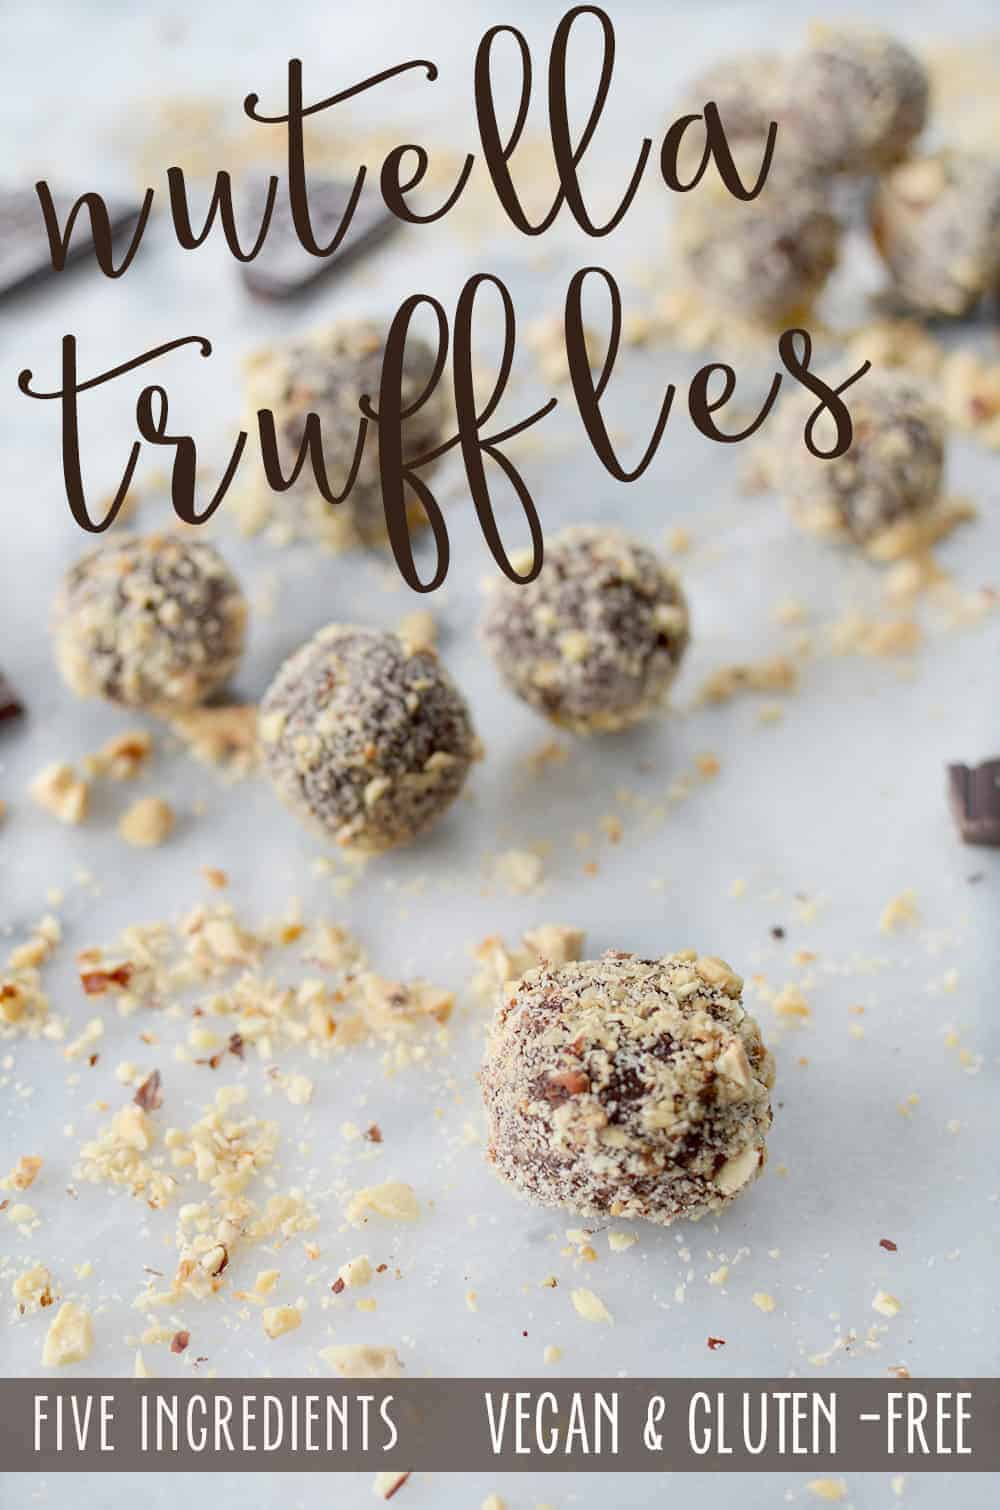 Nutella Truffles! Healthy truffles made with only 5 ingredients! Vegan, glutenfree and naturally sweetened. You've gotta make these!   www.delishknowledge.com